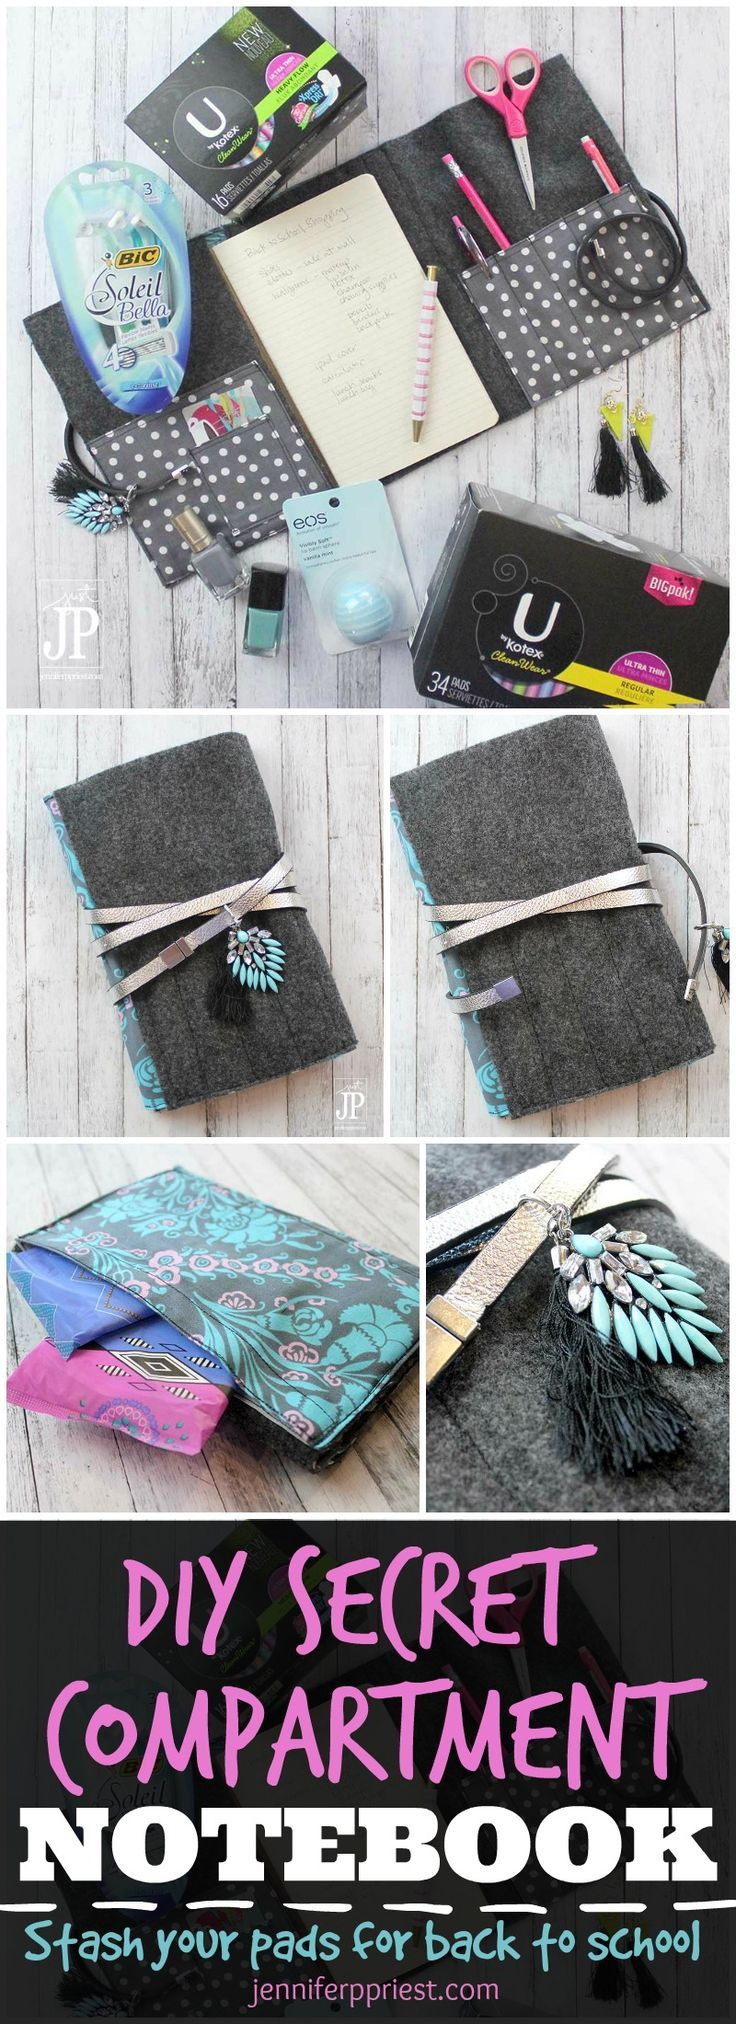 http://www.jenniferppriest.com/period-kit-for-school-diy-secret-compartment-notebook-cover-clutch/ Create a DIY Notebook cover that looks like a clutch purse or notebook cover but has a secret compartment for storing pads like Kotex. There's a full video tutorial for this project at the link above. Make this for back to school so your teen girl can discreetly store her pads or tampons and always be prepared - her friends will be happy that she has their back #CycleSurvival #ad…